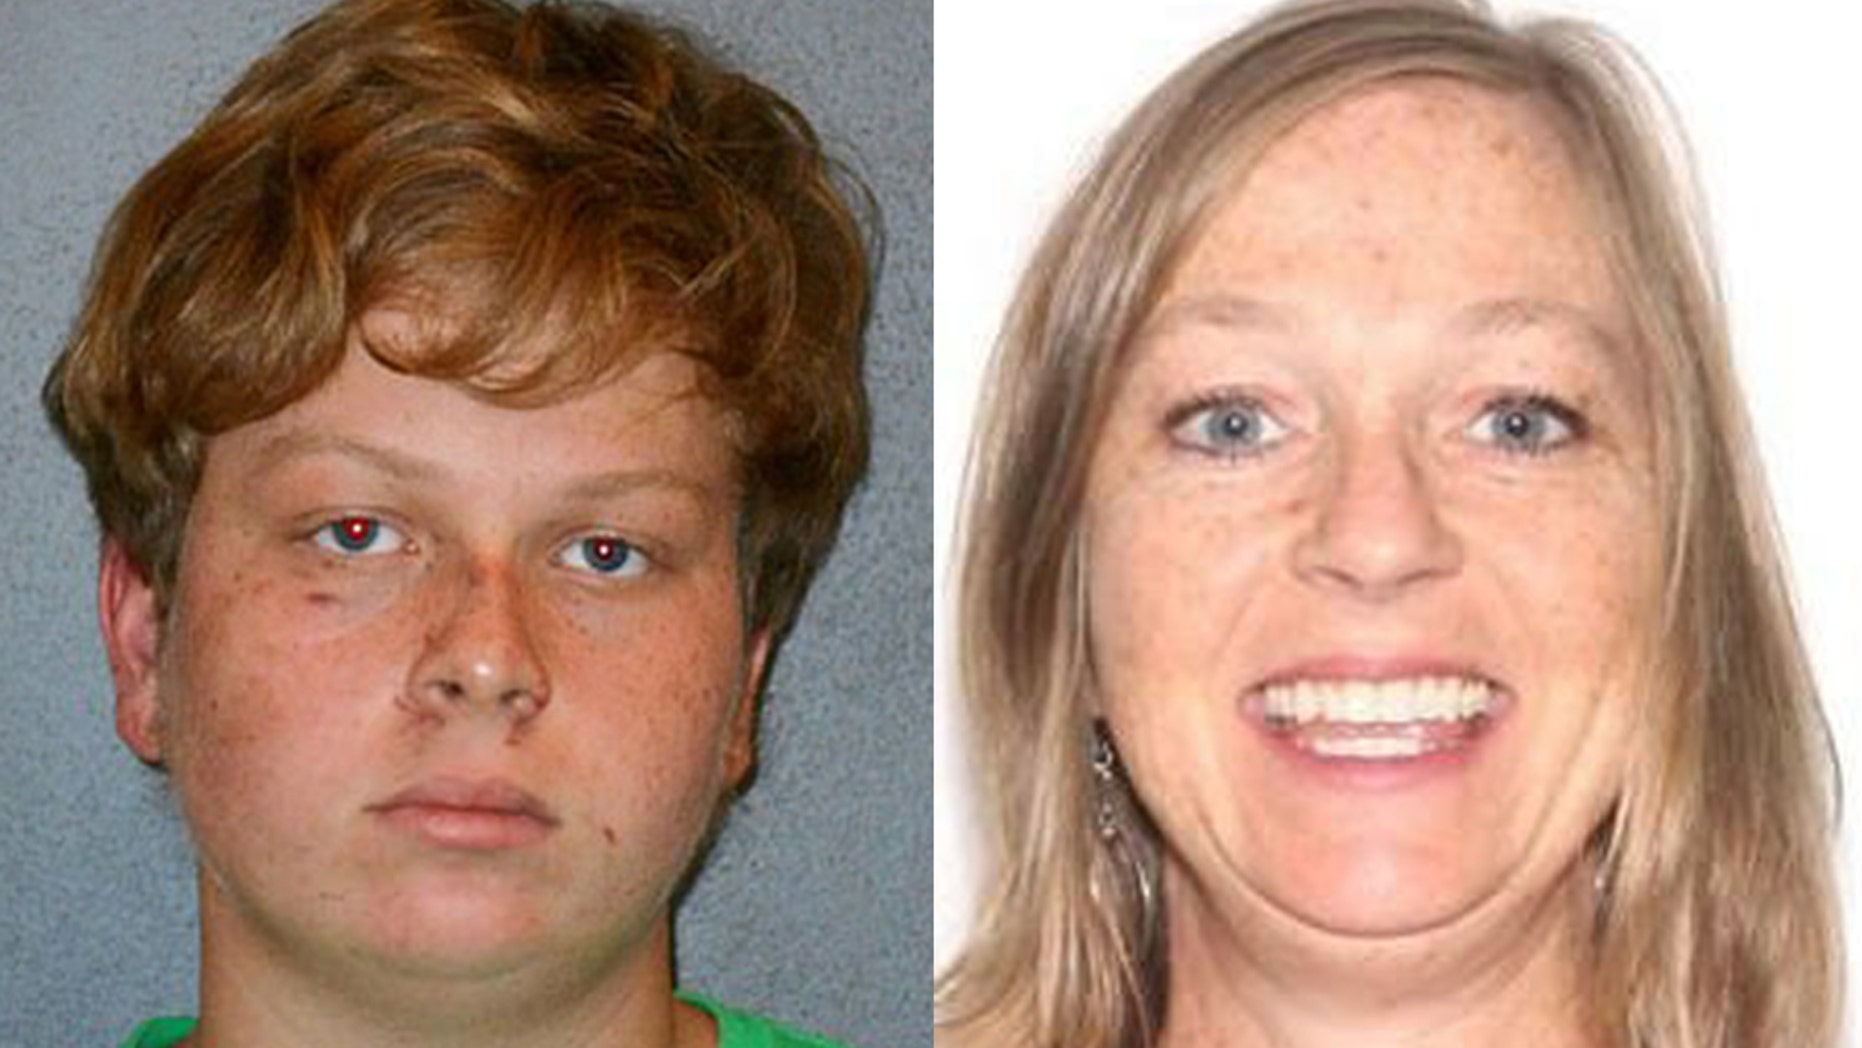 Florida teenager charged with strangling, burying mother